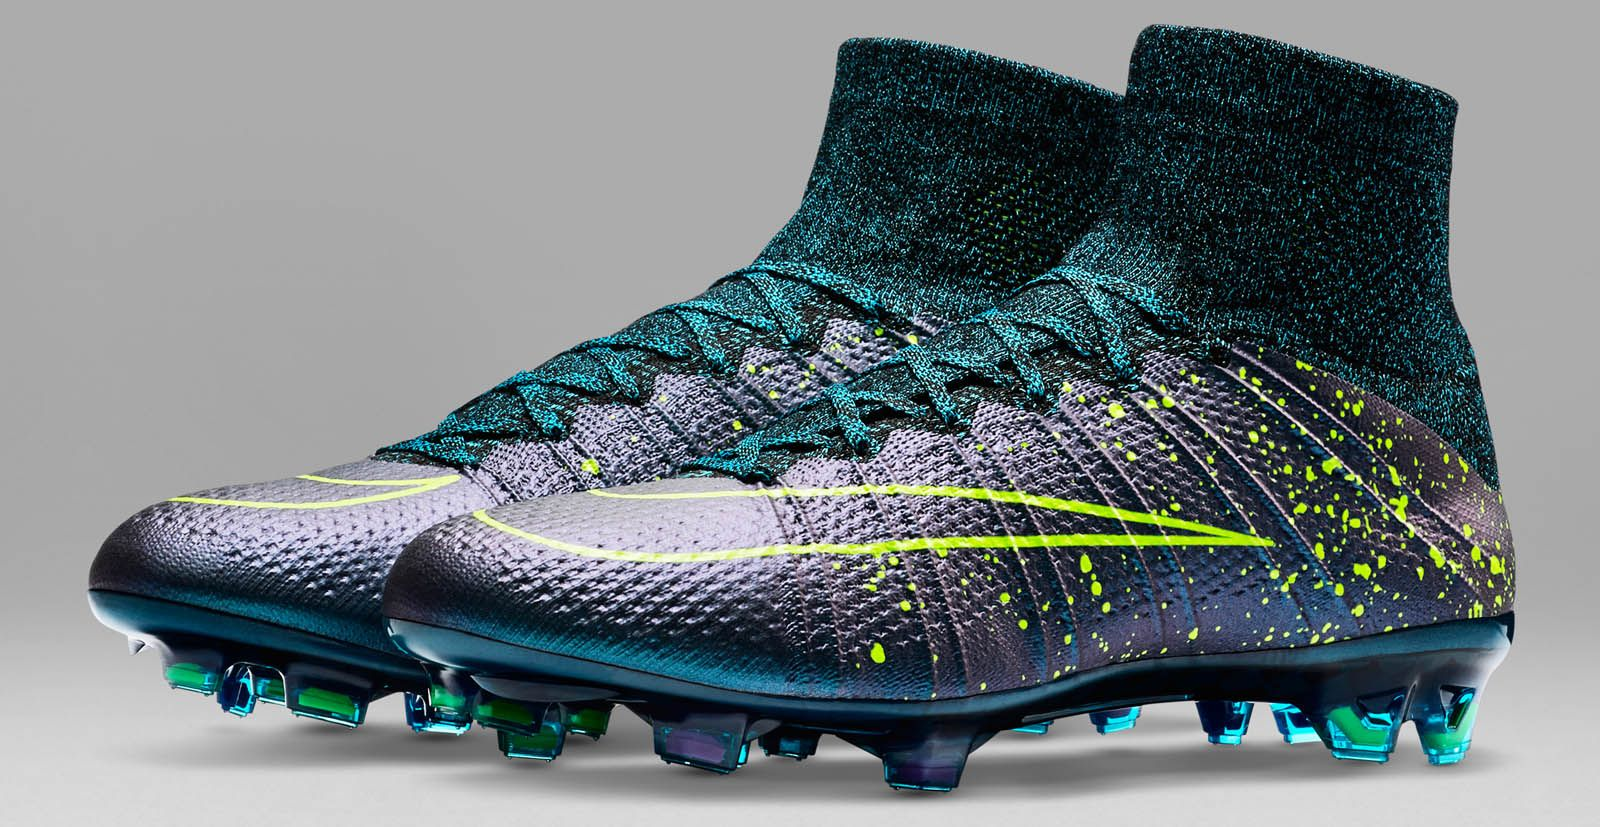 new nike soccer boots 2016